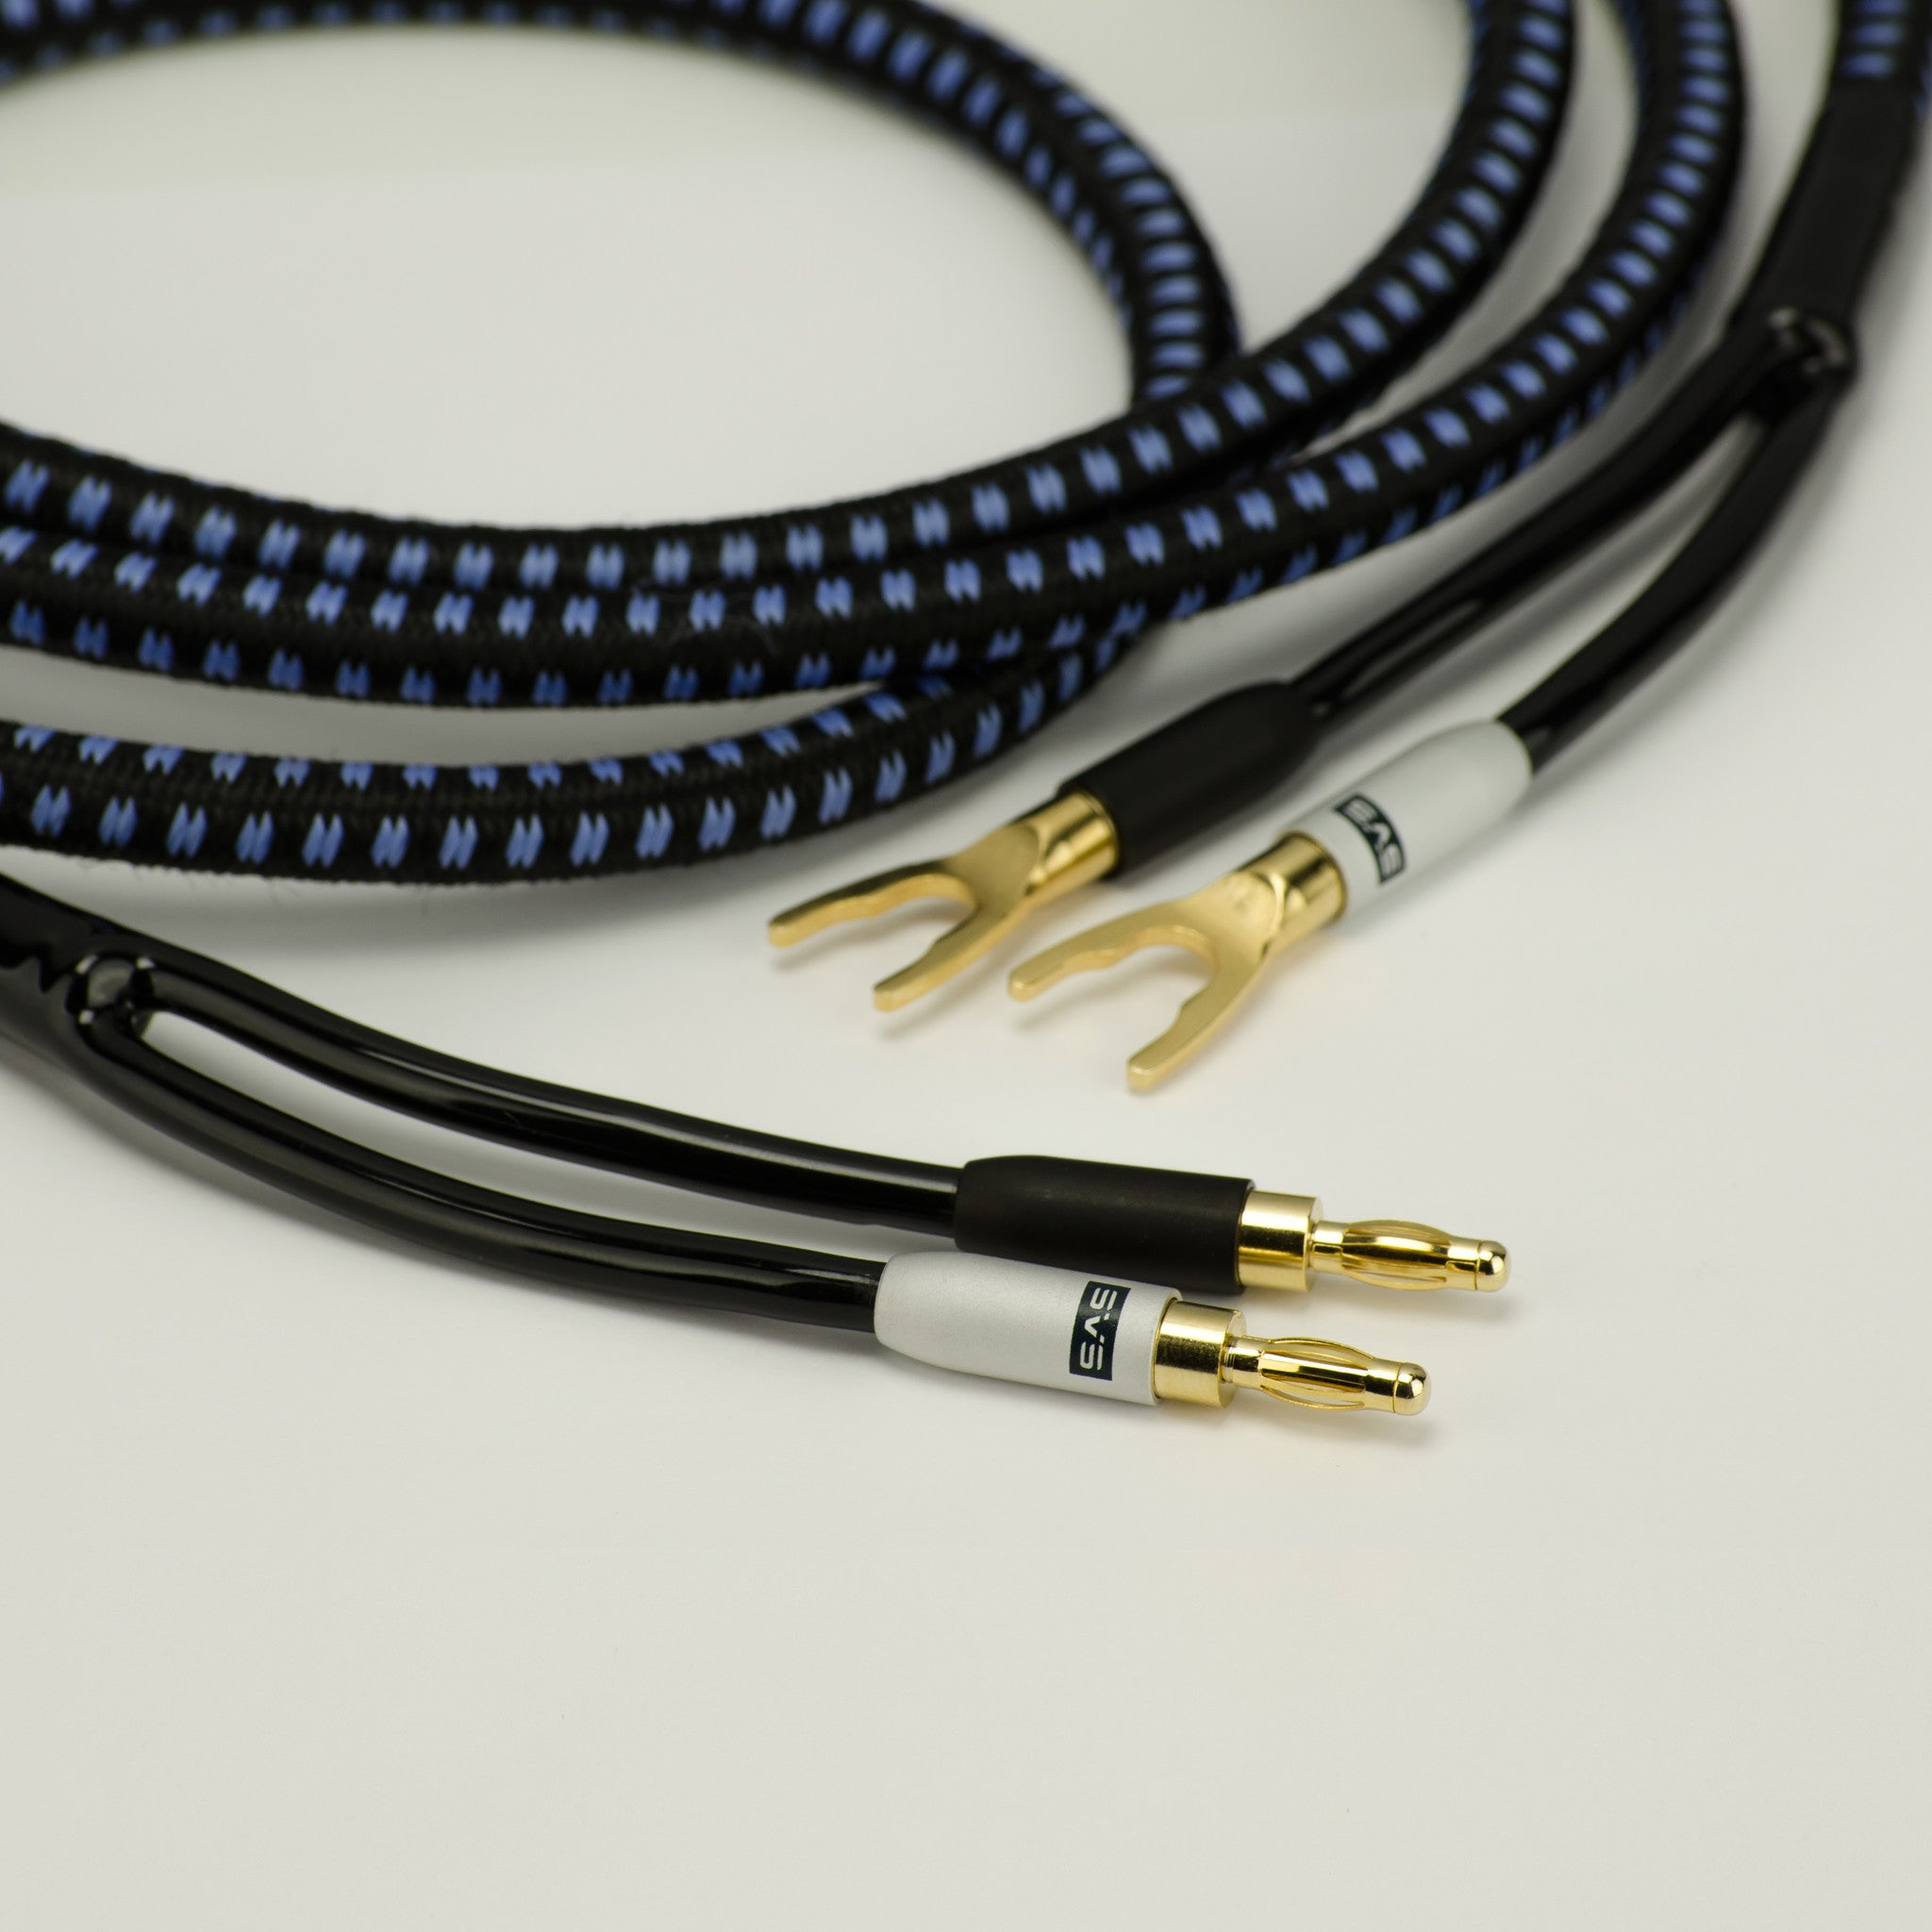 SoundPath Ultra Speaker Cable